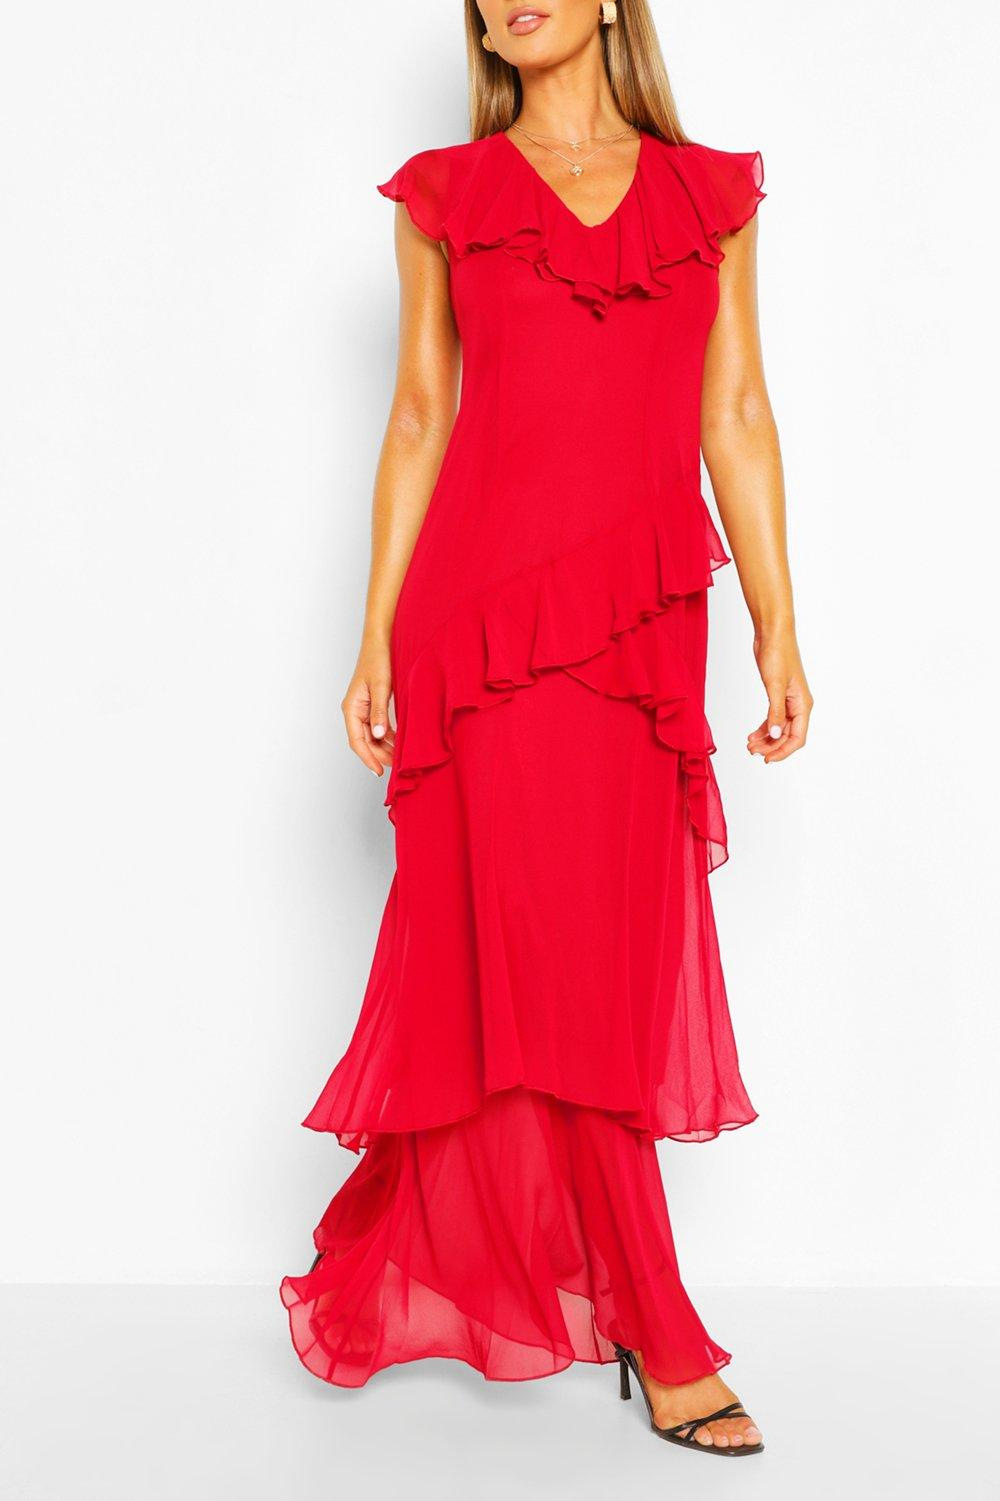 1930s Style Clothing and Fashion Womens Plunge Front Ruffle Maxi Dress - Red - 14 $14.00 AT vintagedancer.com